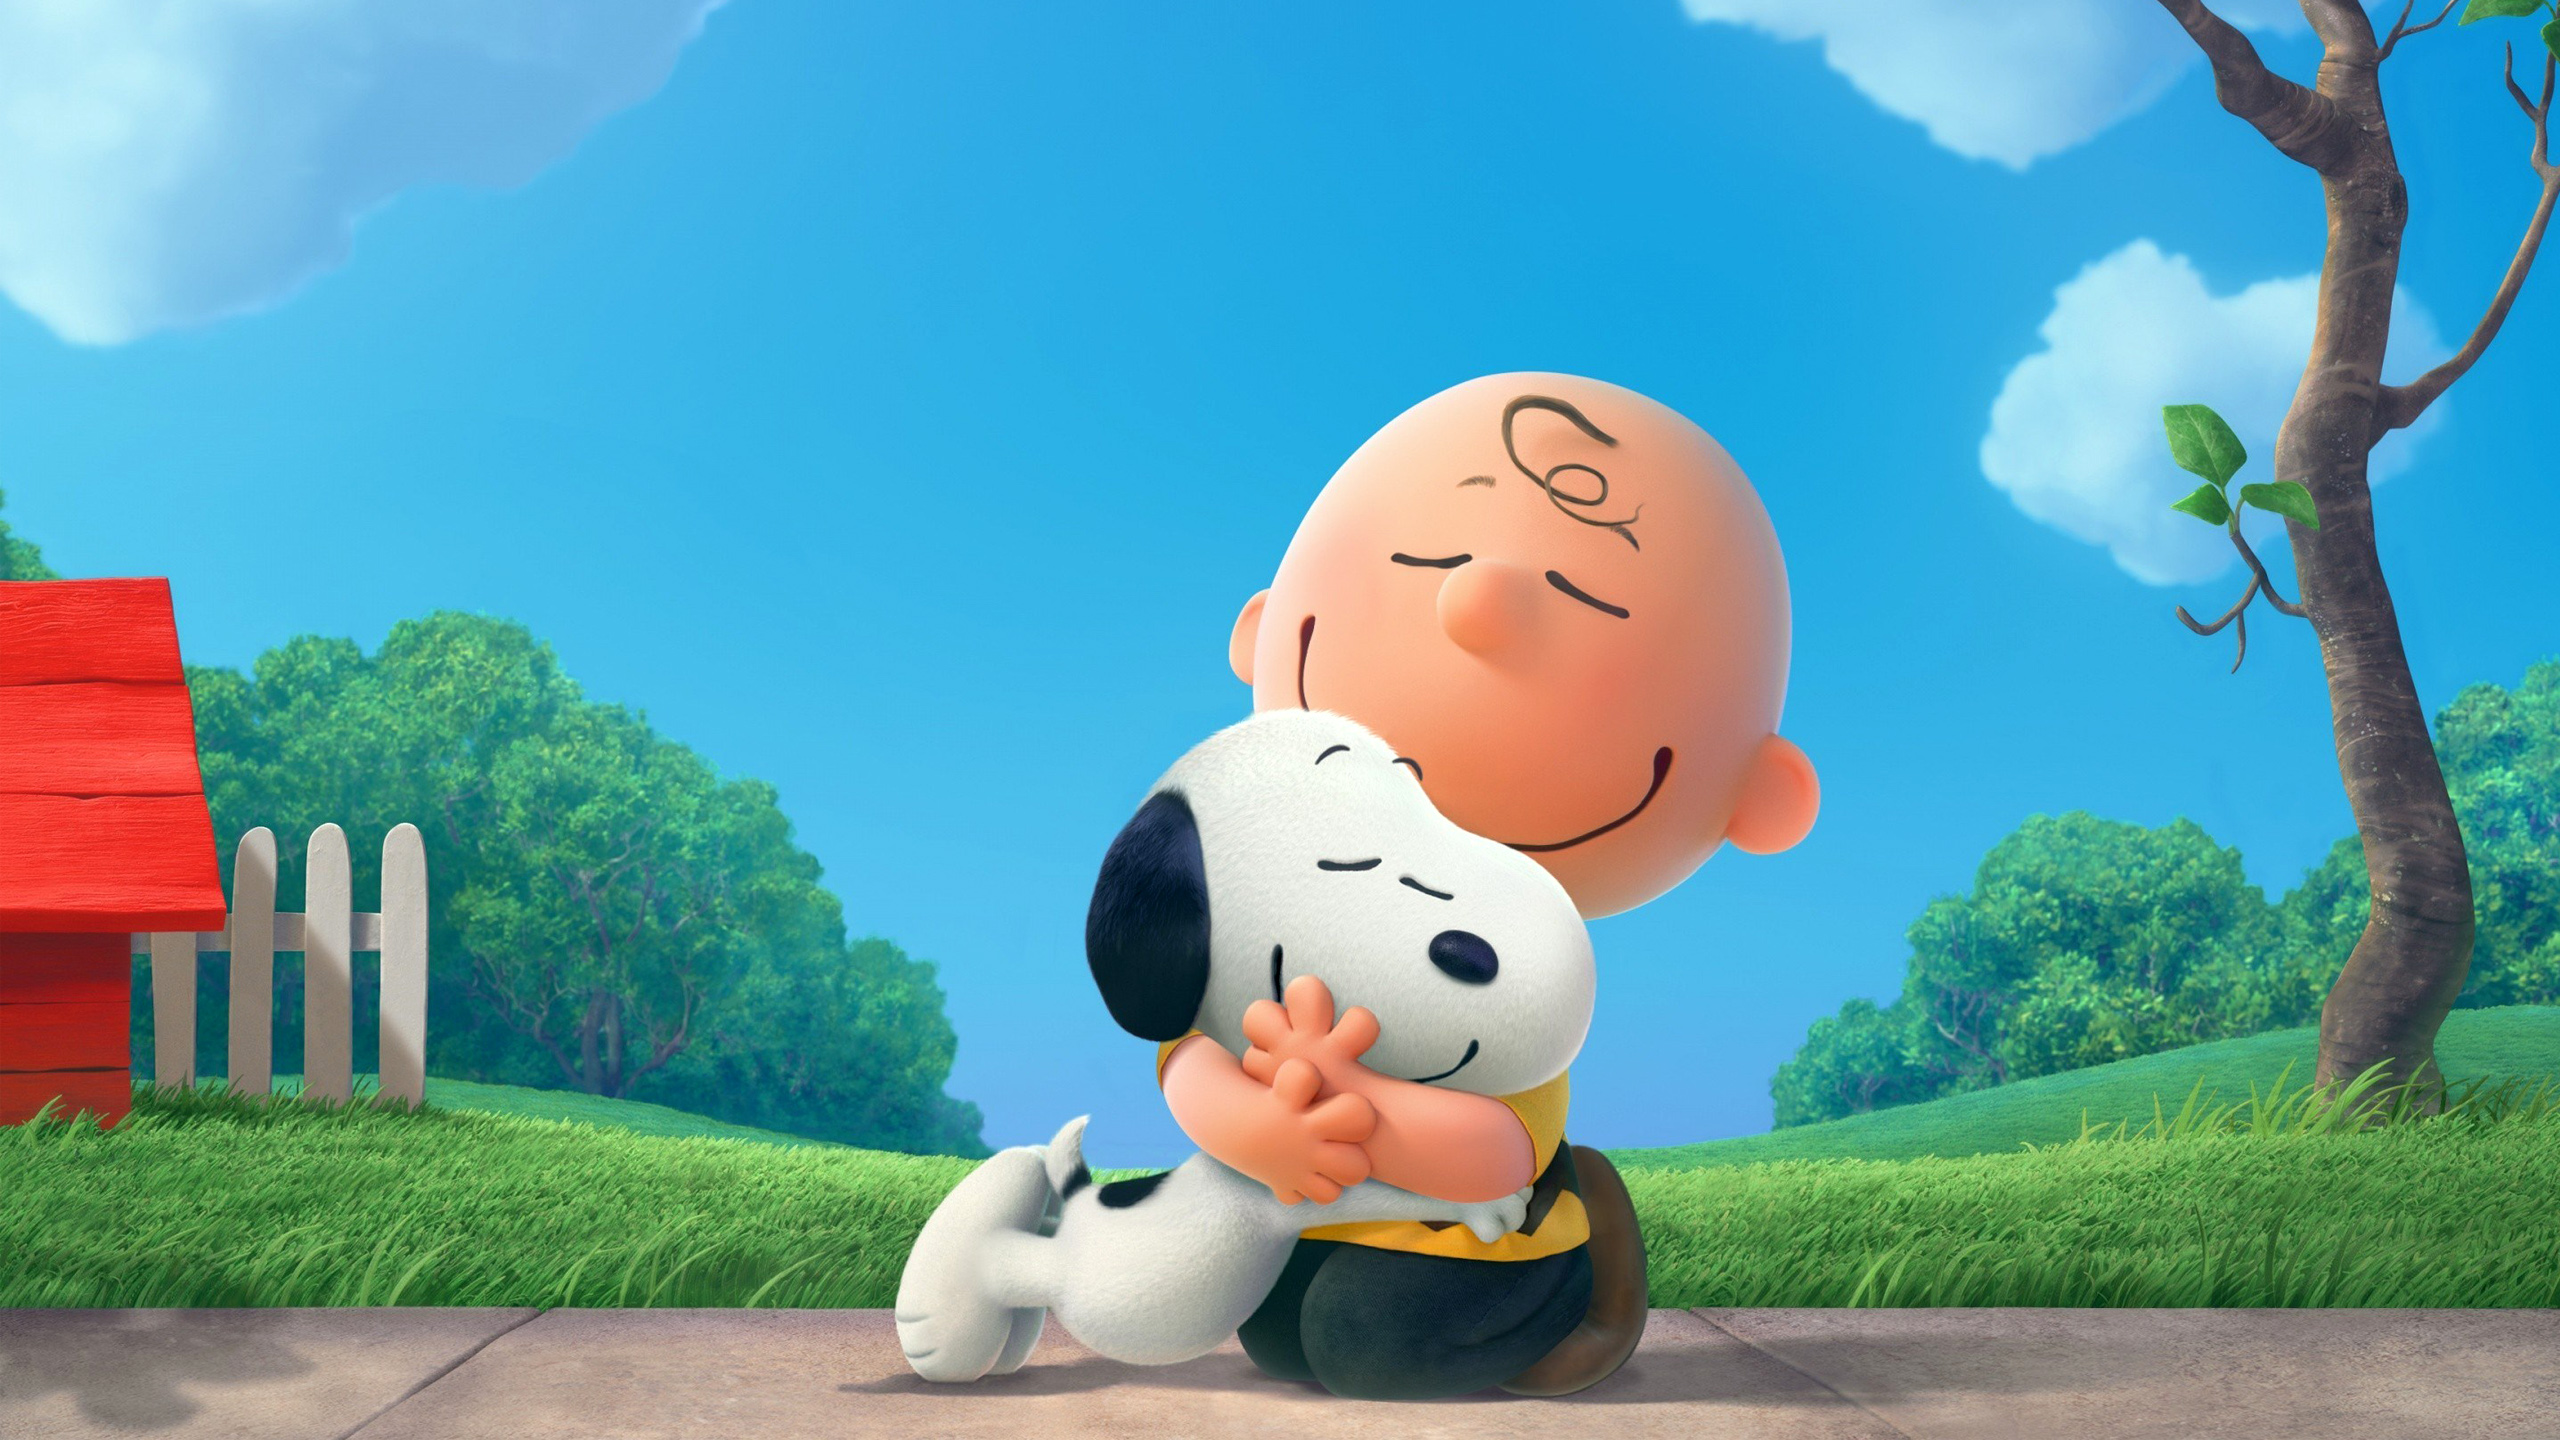 Cute Snoopy Wallpaper Iphone The Peanuts Charlie Brown Snoopy Wallpapers Hd